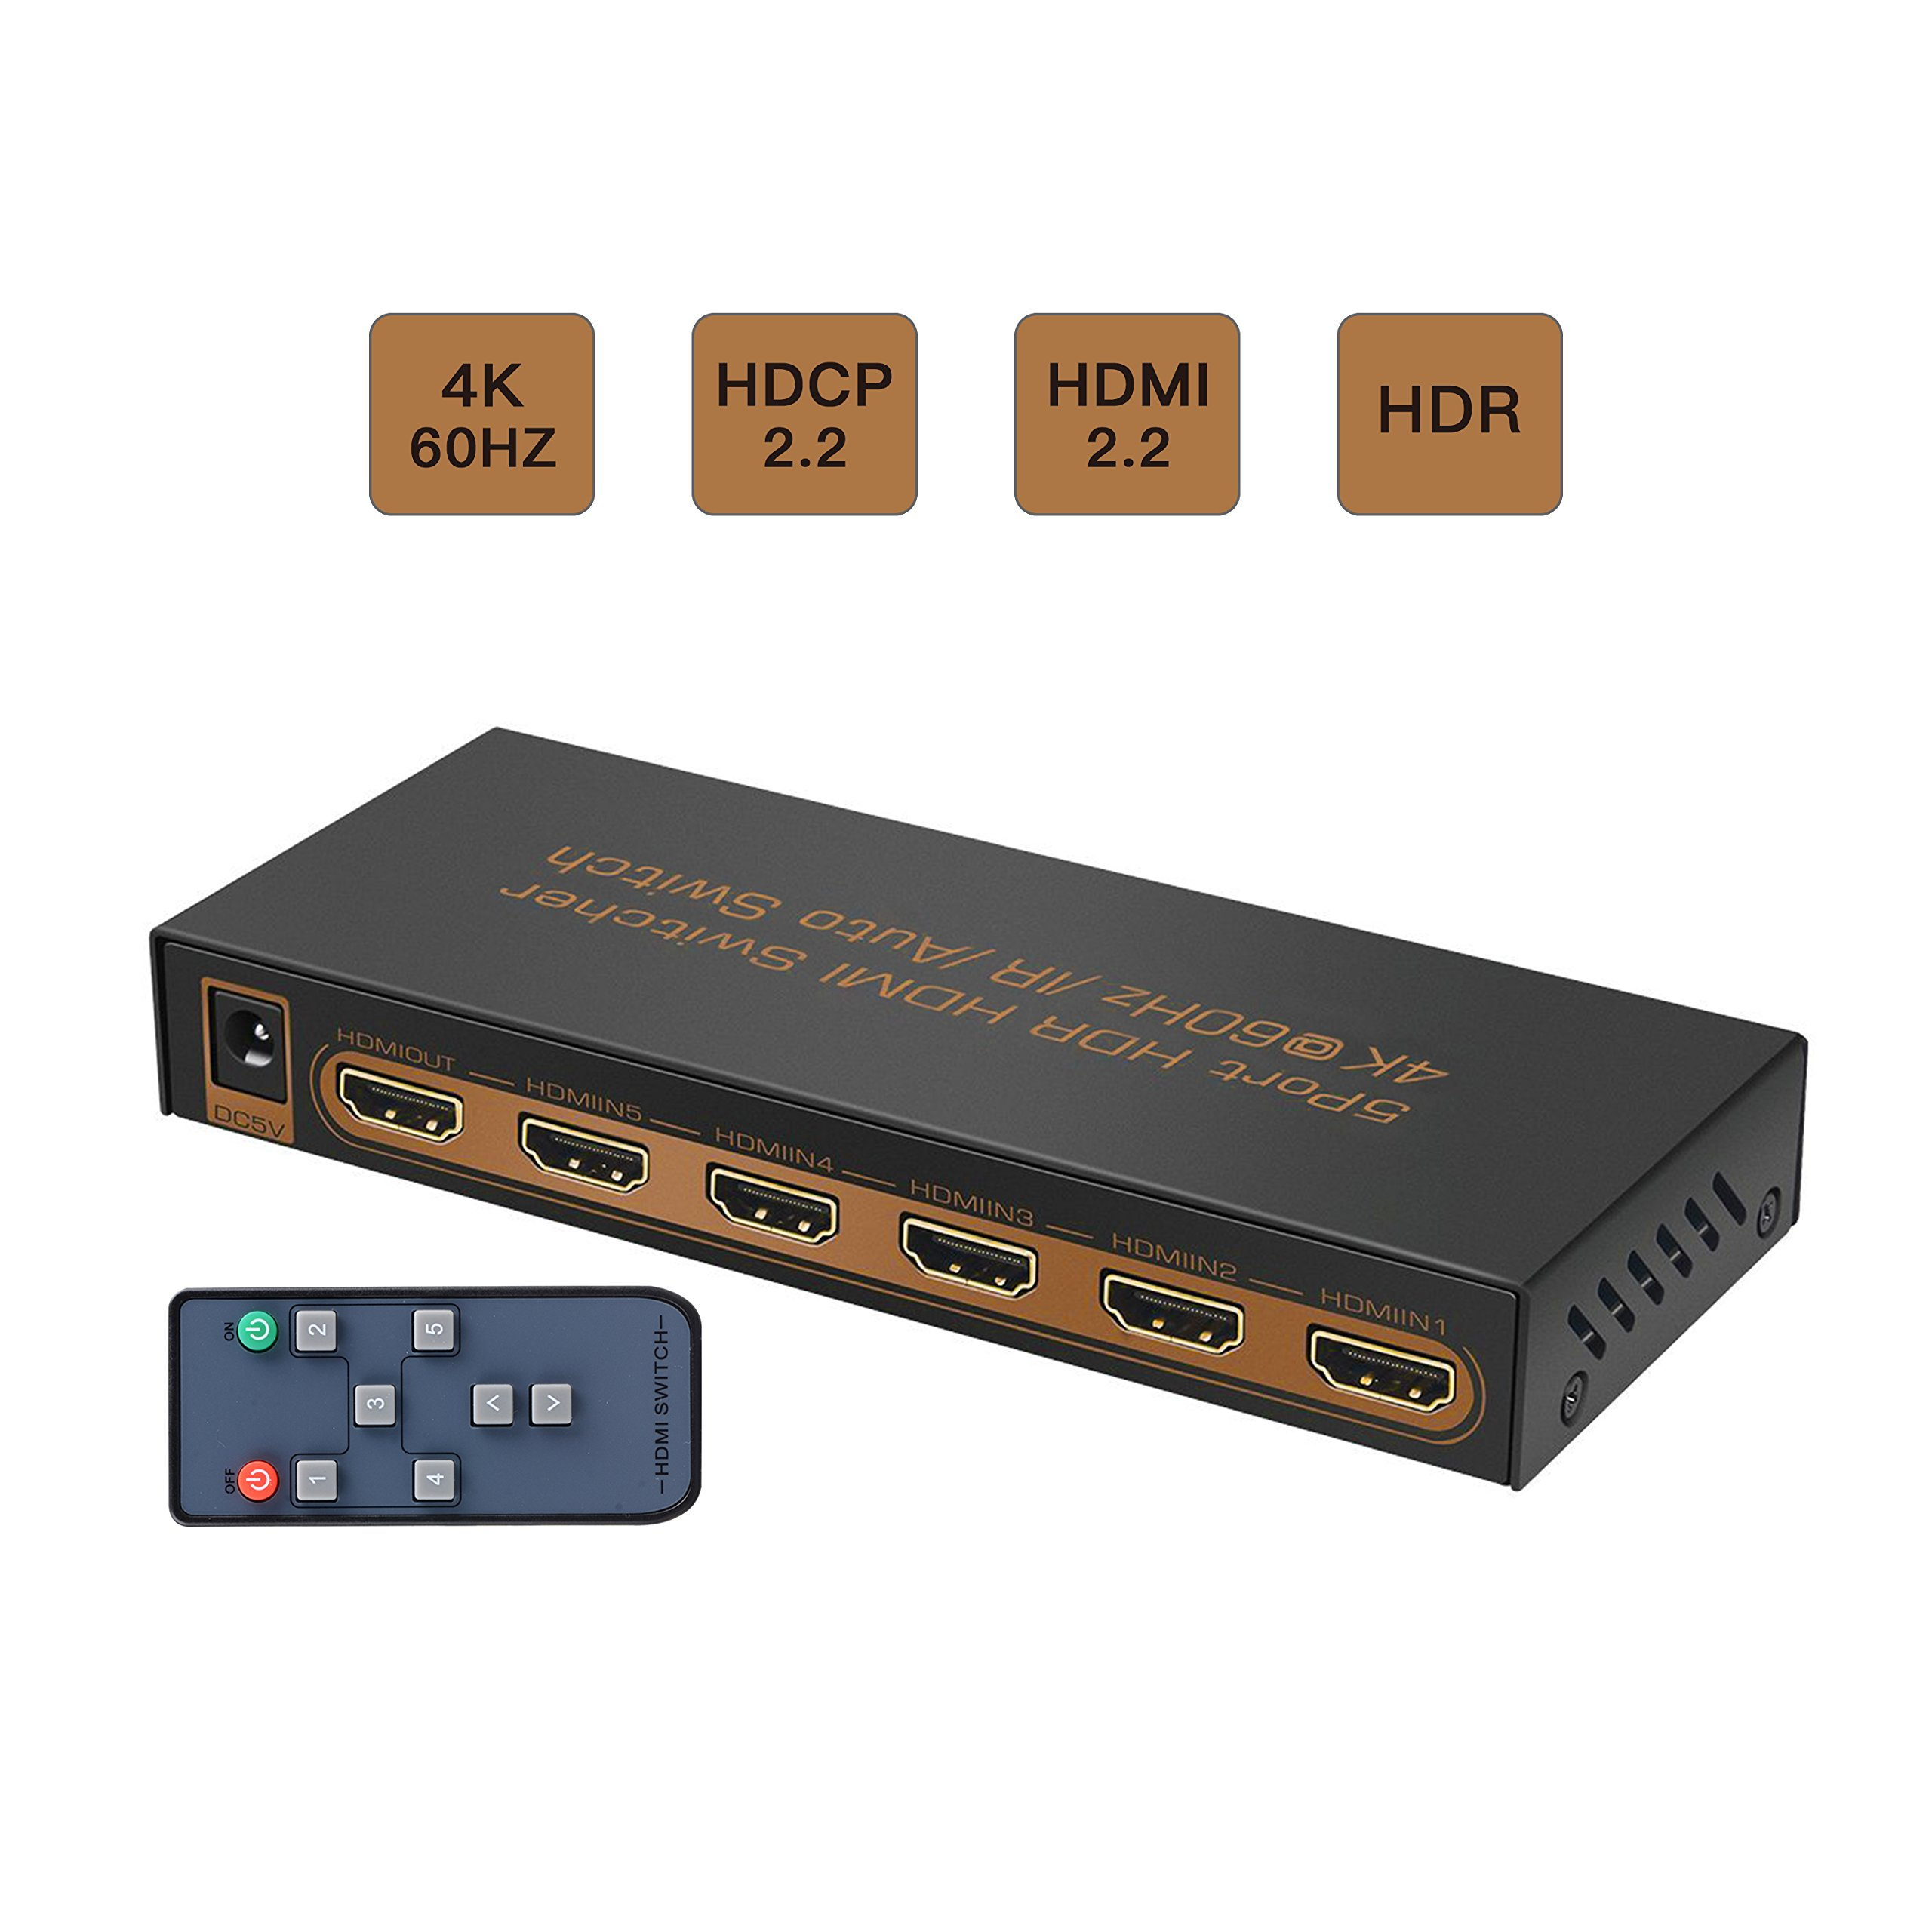 CORPRIT 4K HDMI Switch, 4K x 2K/60Hz HDMI Switcher with IR Remote, Support HDR,HDMI 2.0, HDCP 2.2,Full HD/3D,1080P,DTS/Dolby